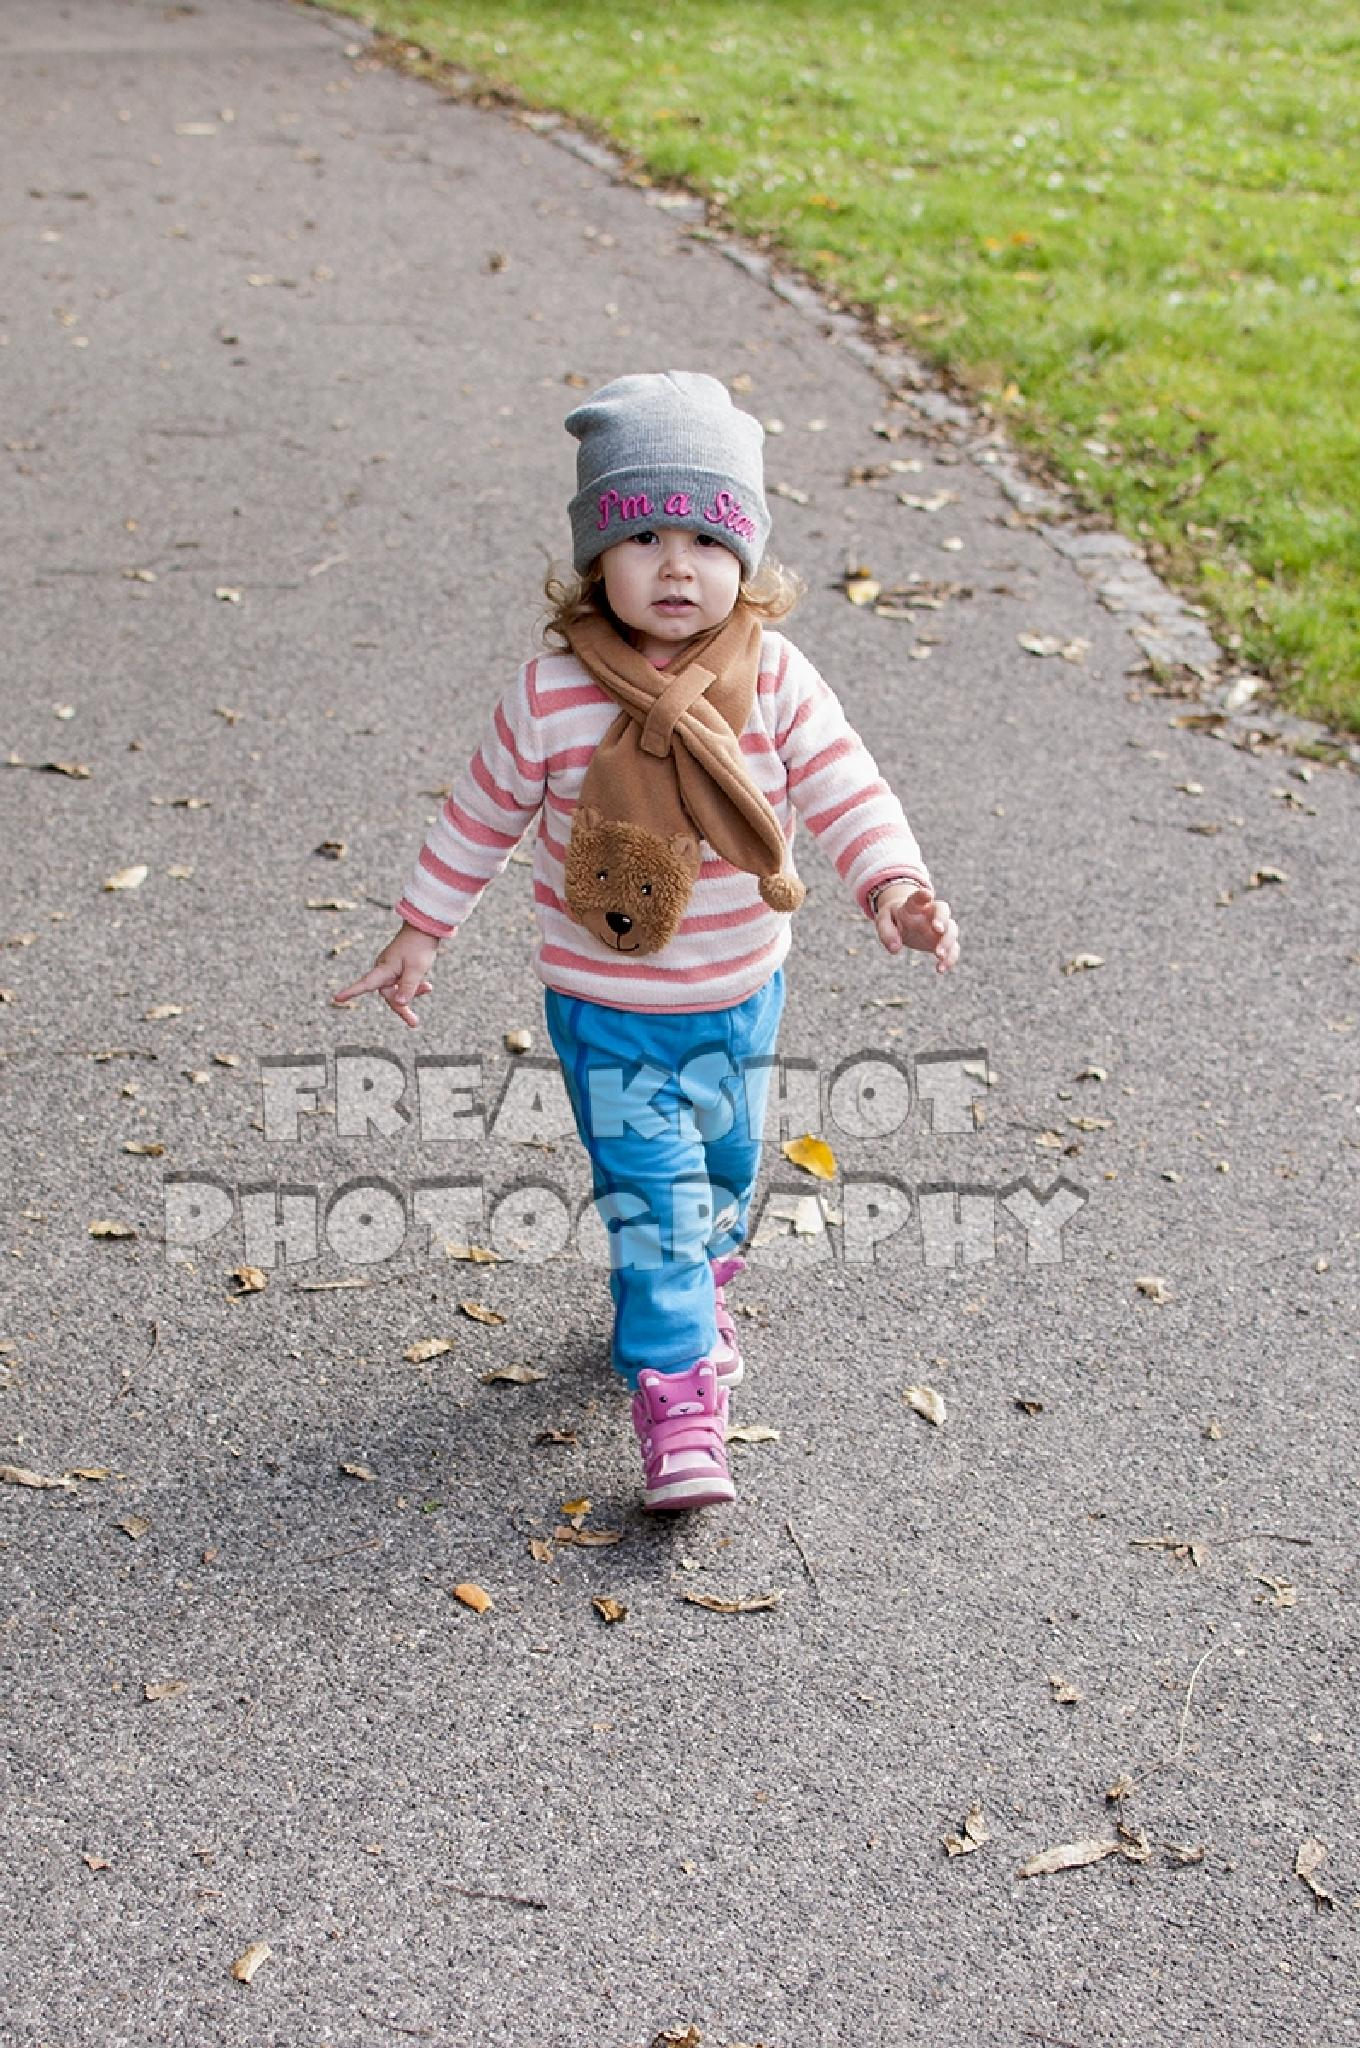 my little girl by FreakshotPhotography